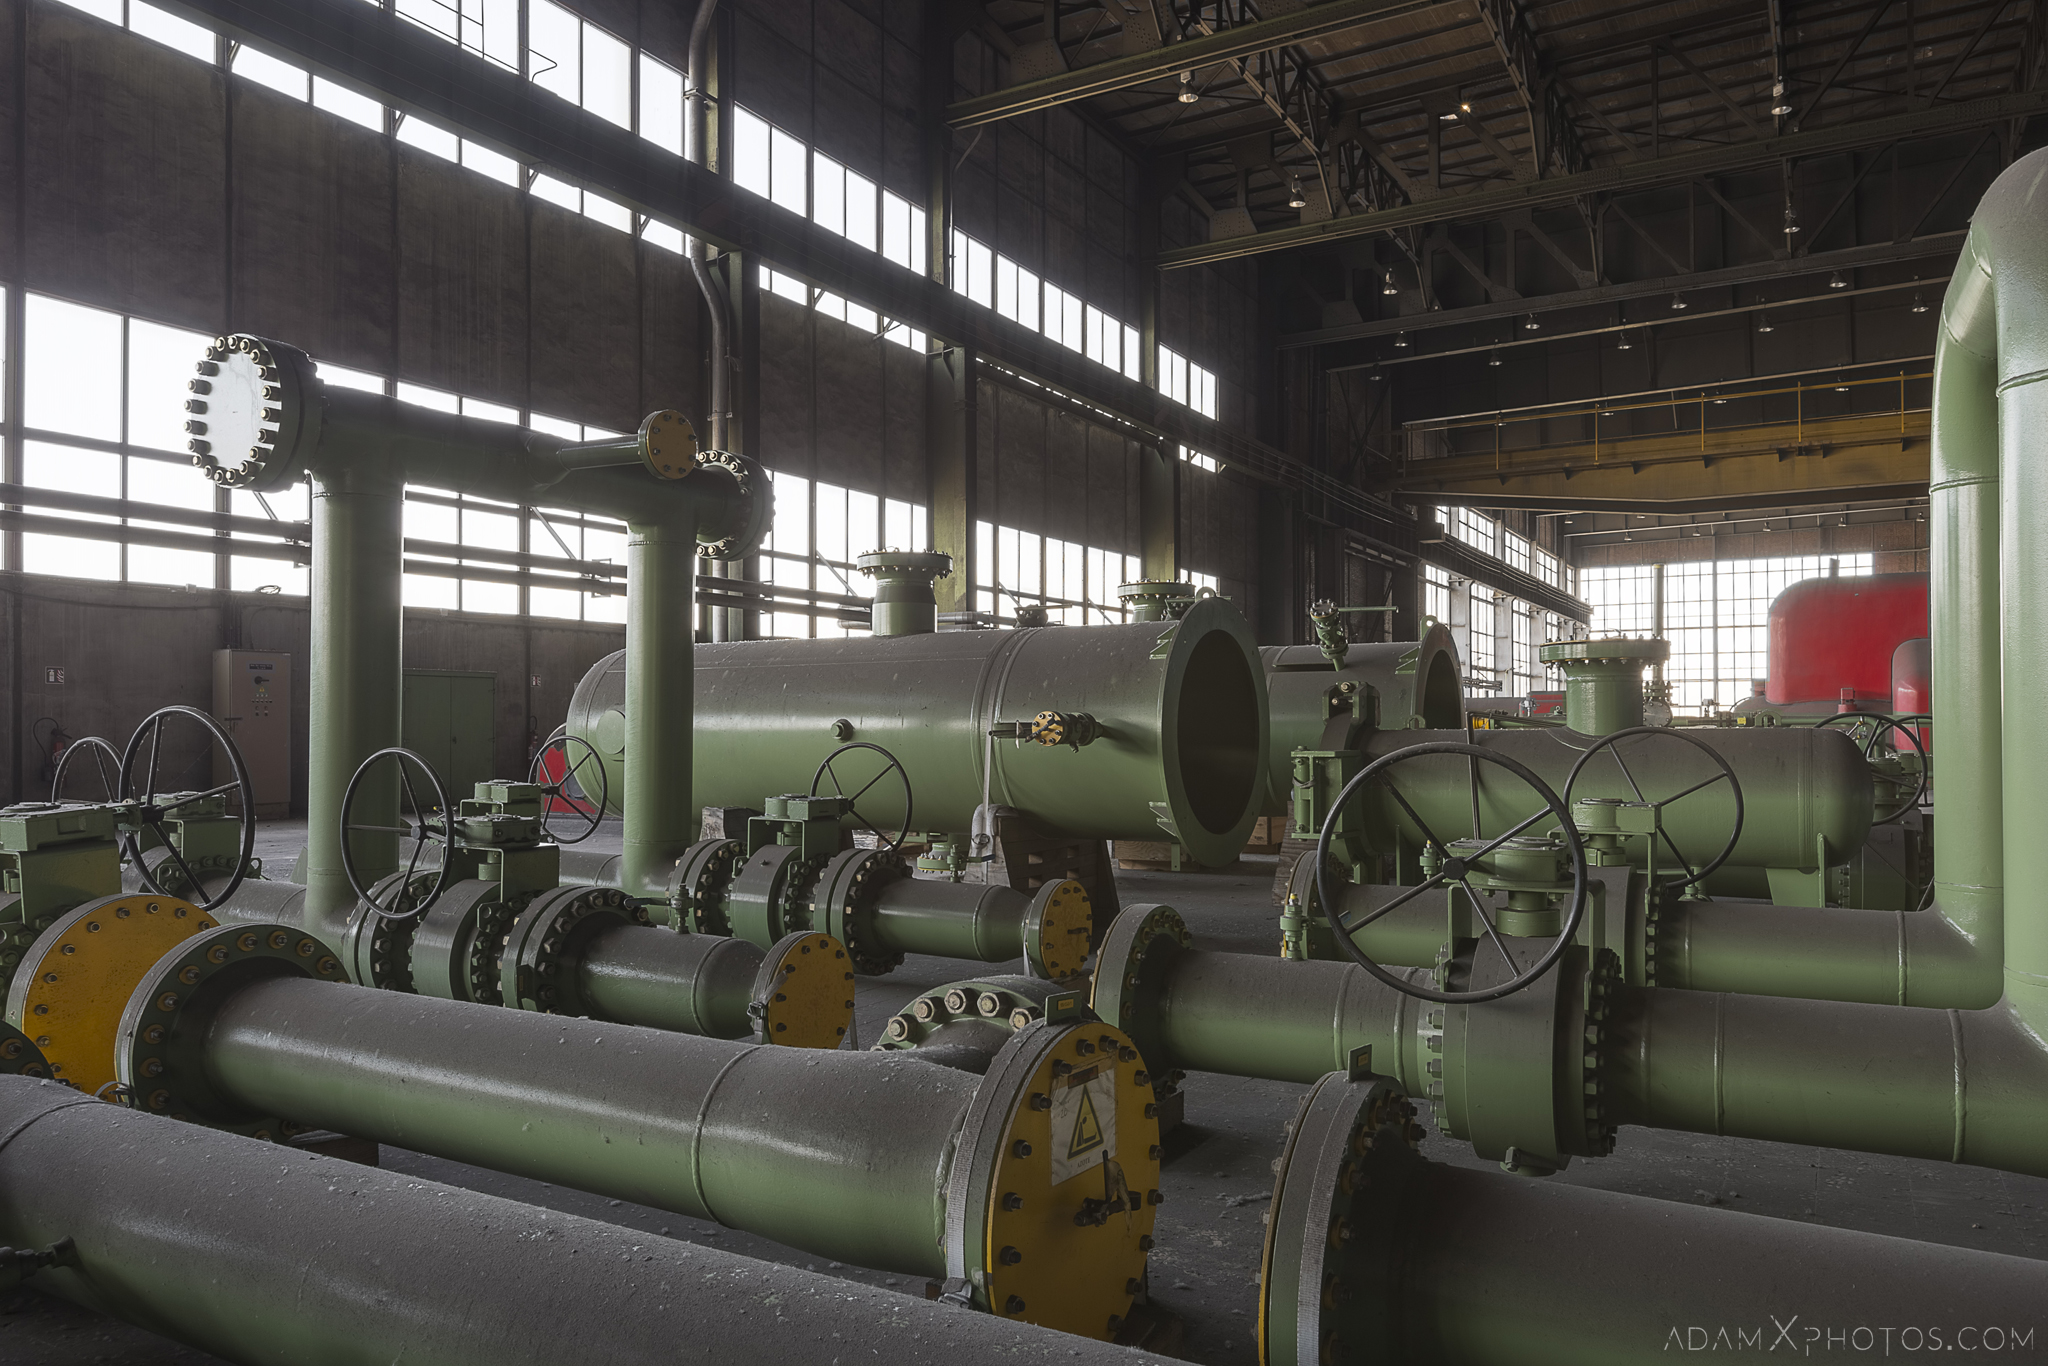 green pipes turbine hall Centrale de schneider powerplant power plant industrial industy Adam X Urban Exploration France Access 2017 Abandoned decay lost forgotten derelict location creepy haunting eerie